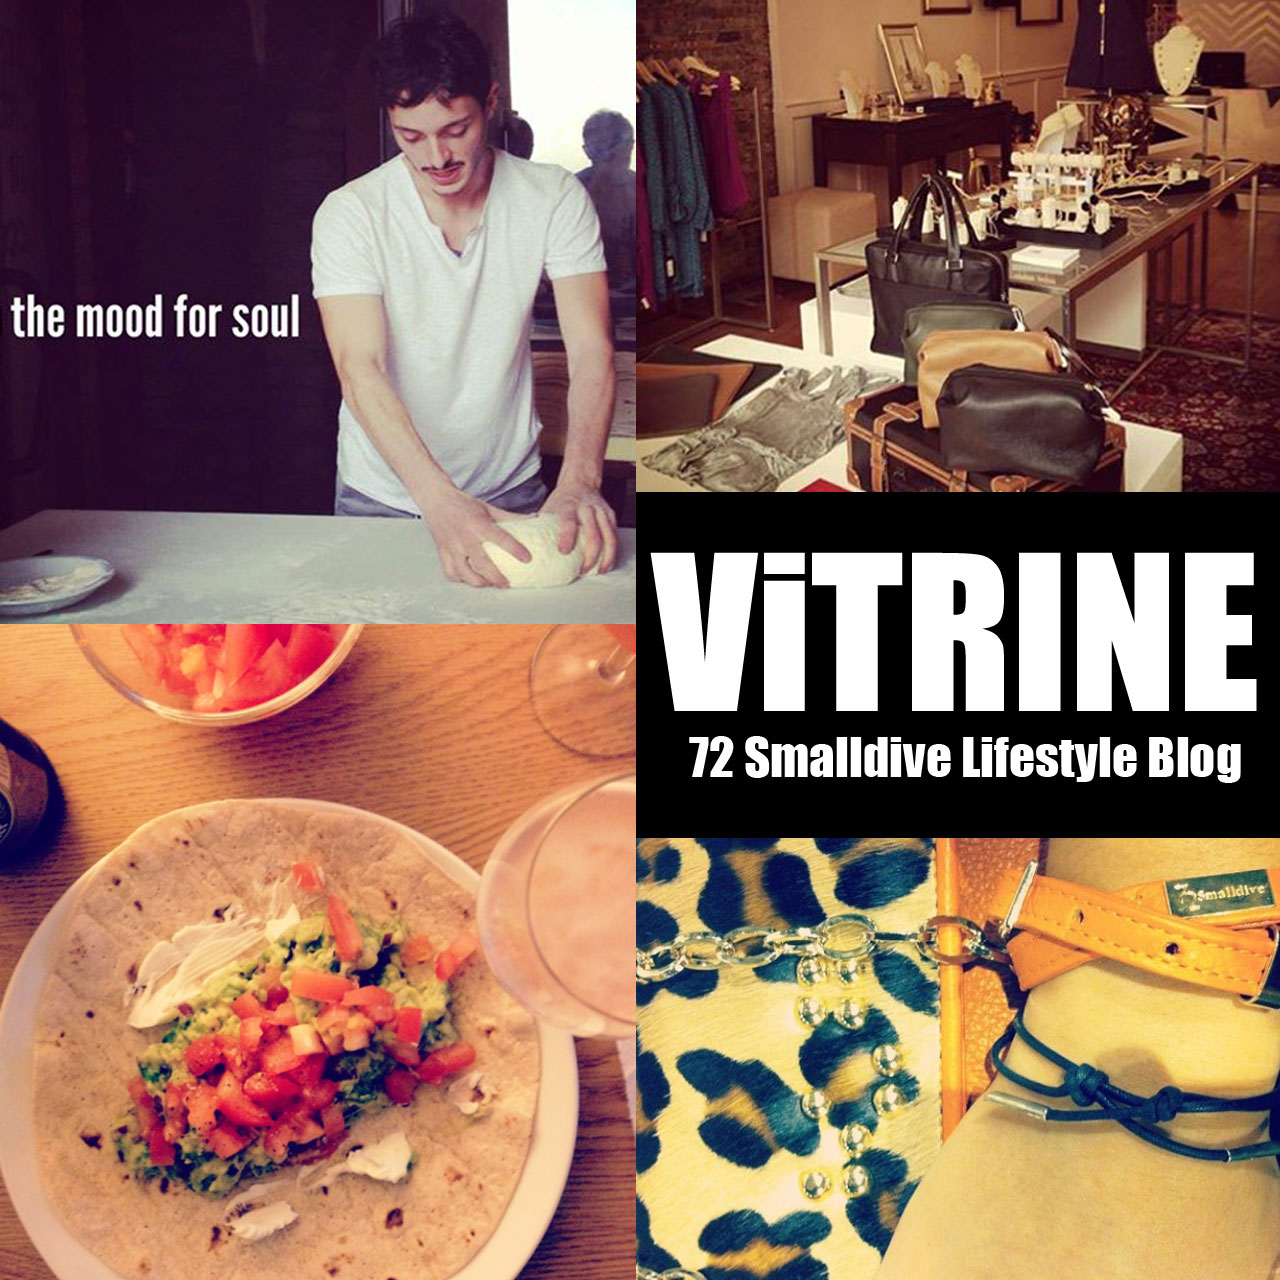 72Smalldive Subscribe SlowLiving Blog ViTRINE (8)